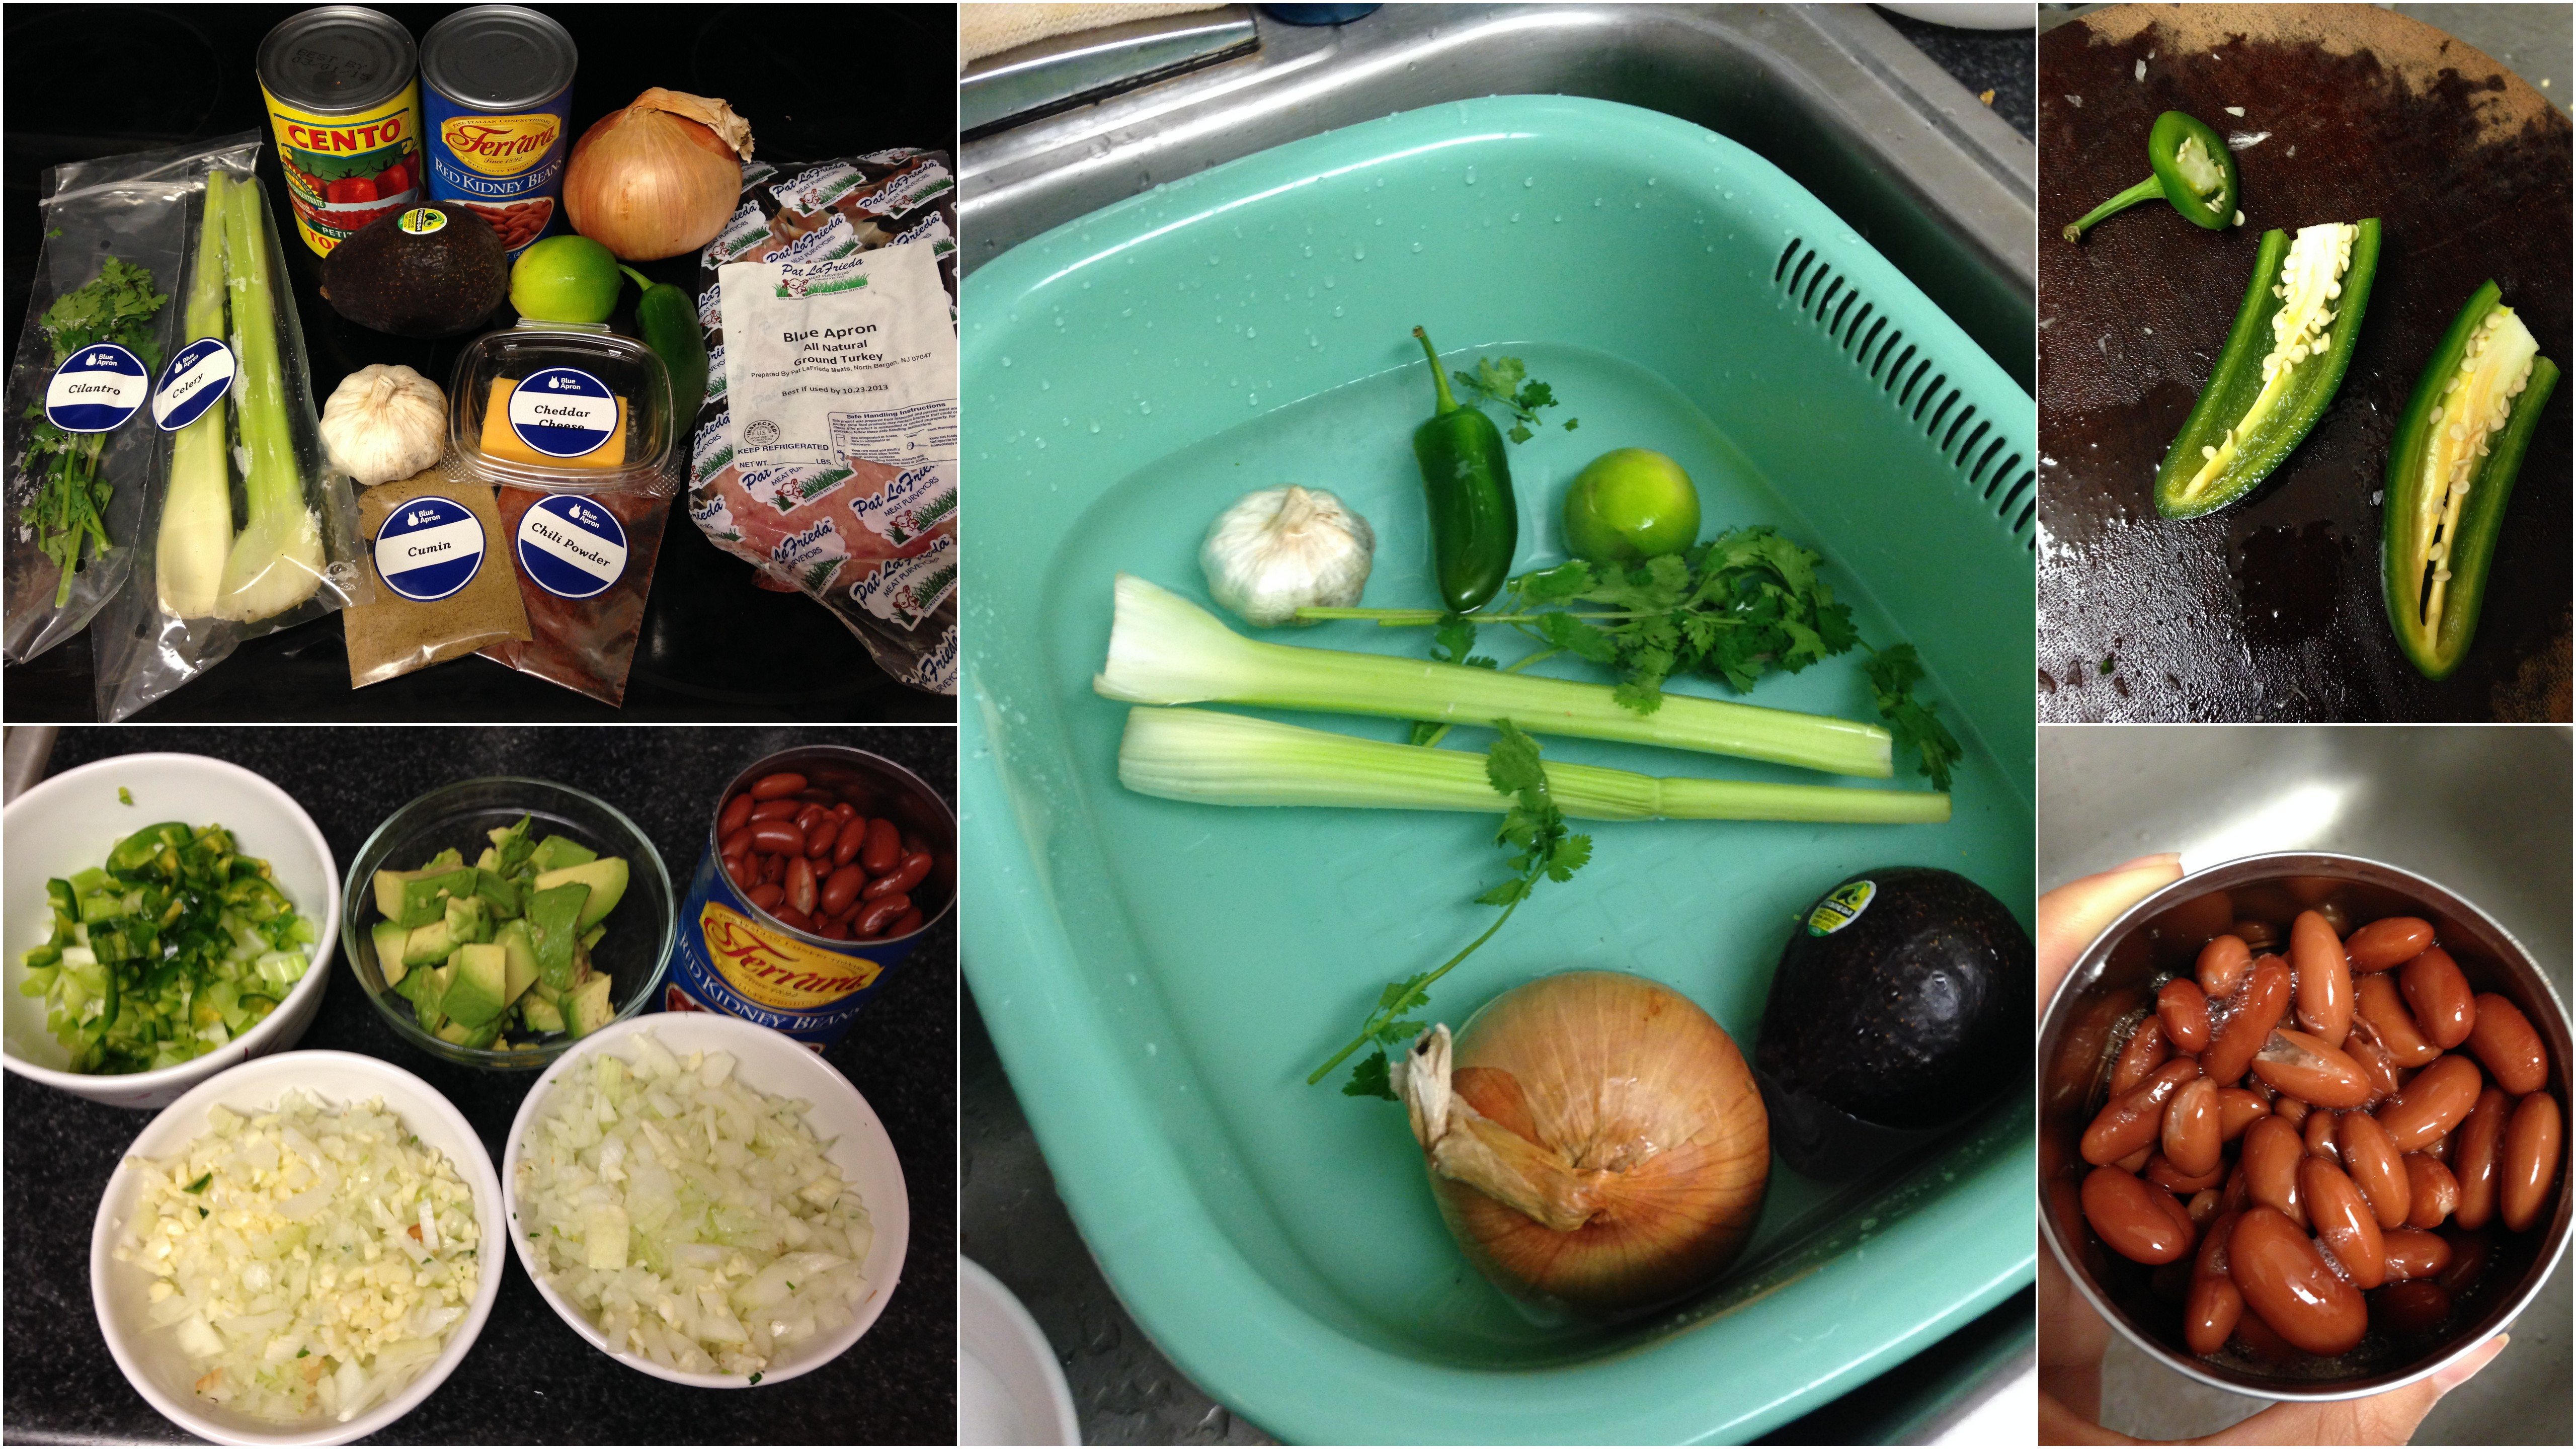 Blue apron reviews - Collage Of Blue Apron Turkey Chili Vegetable Ingredients